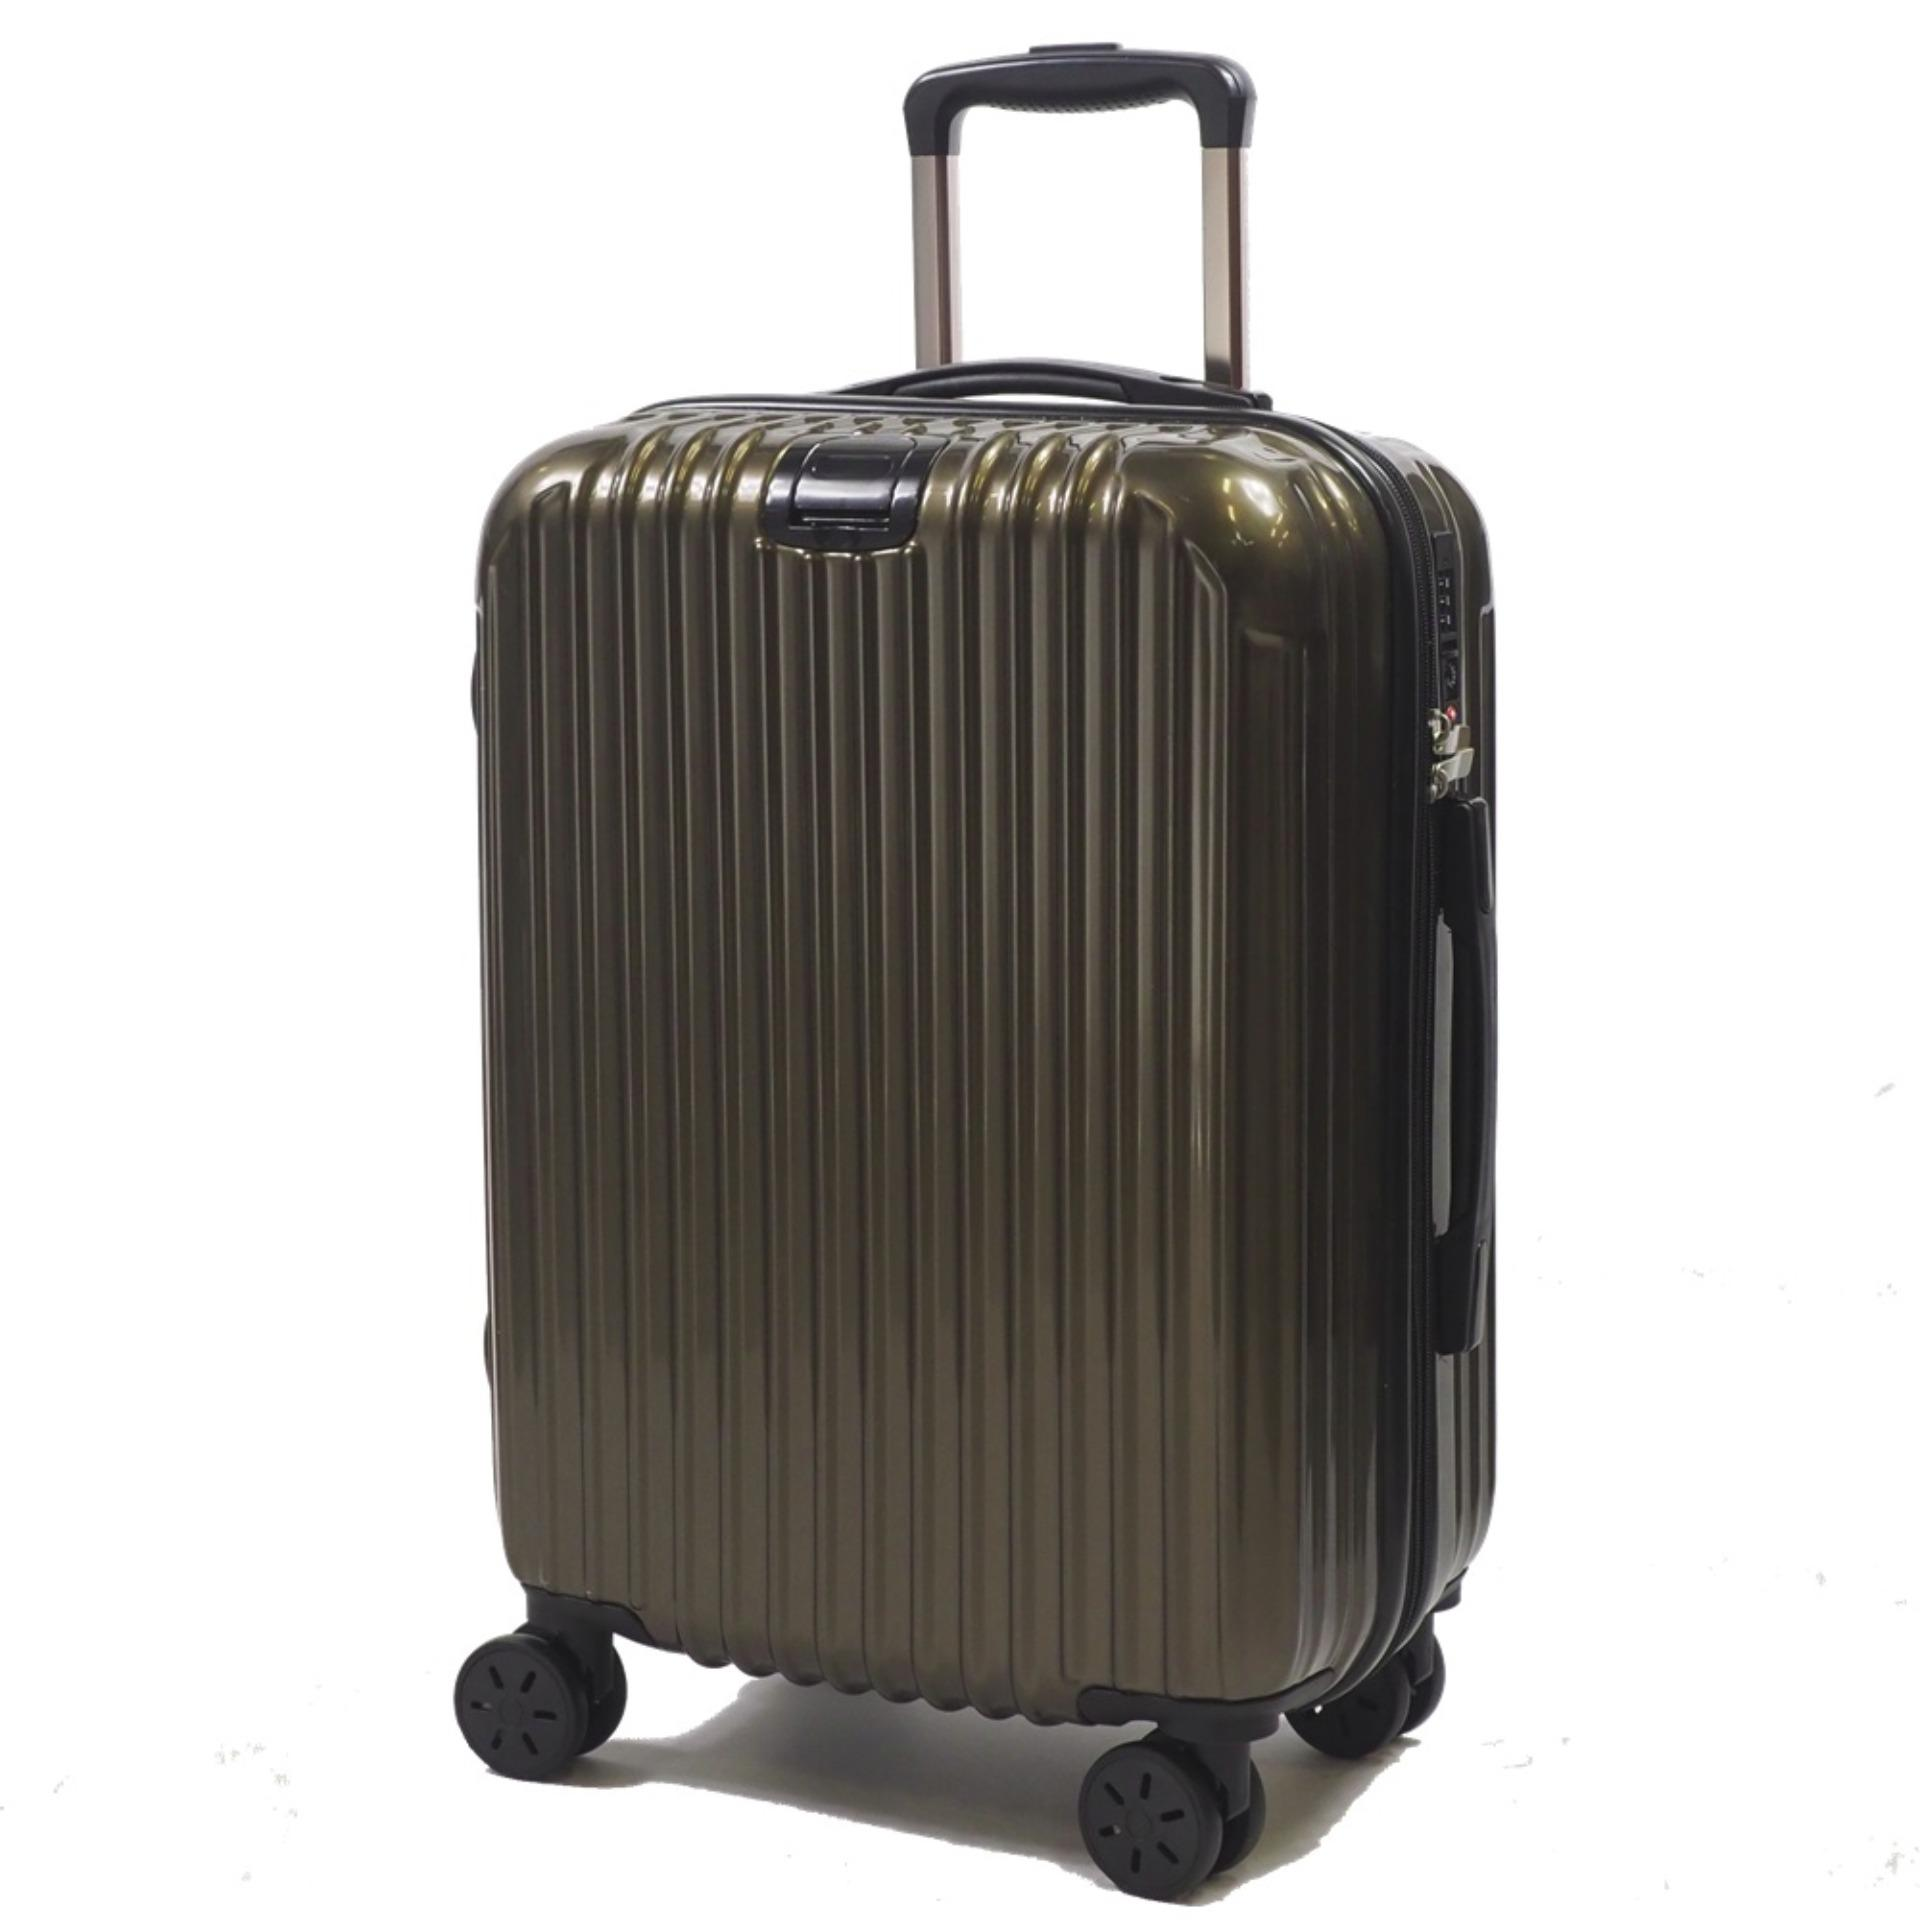 20 inch KEFI Luxurious Expandable Luggage with Warranty